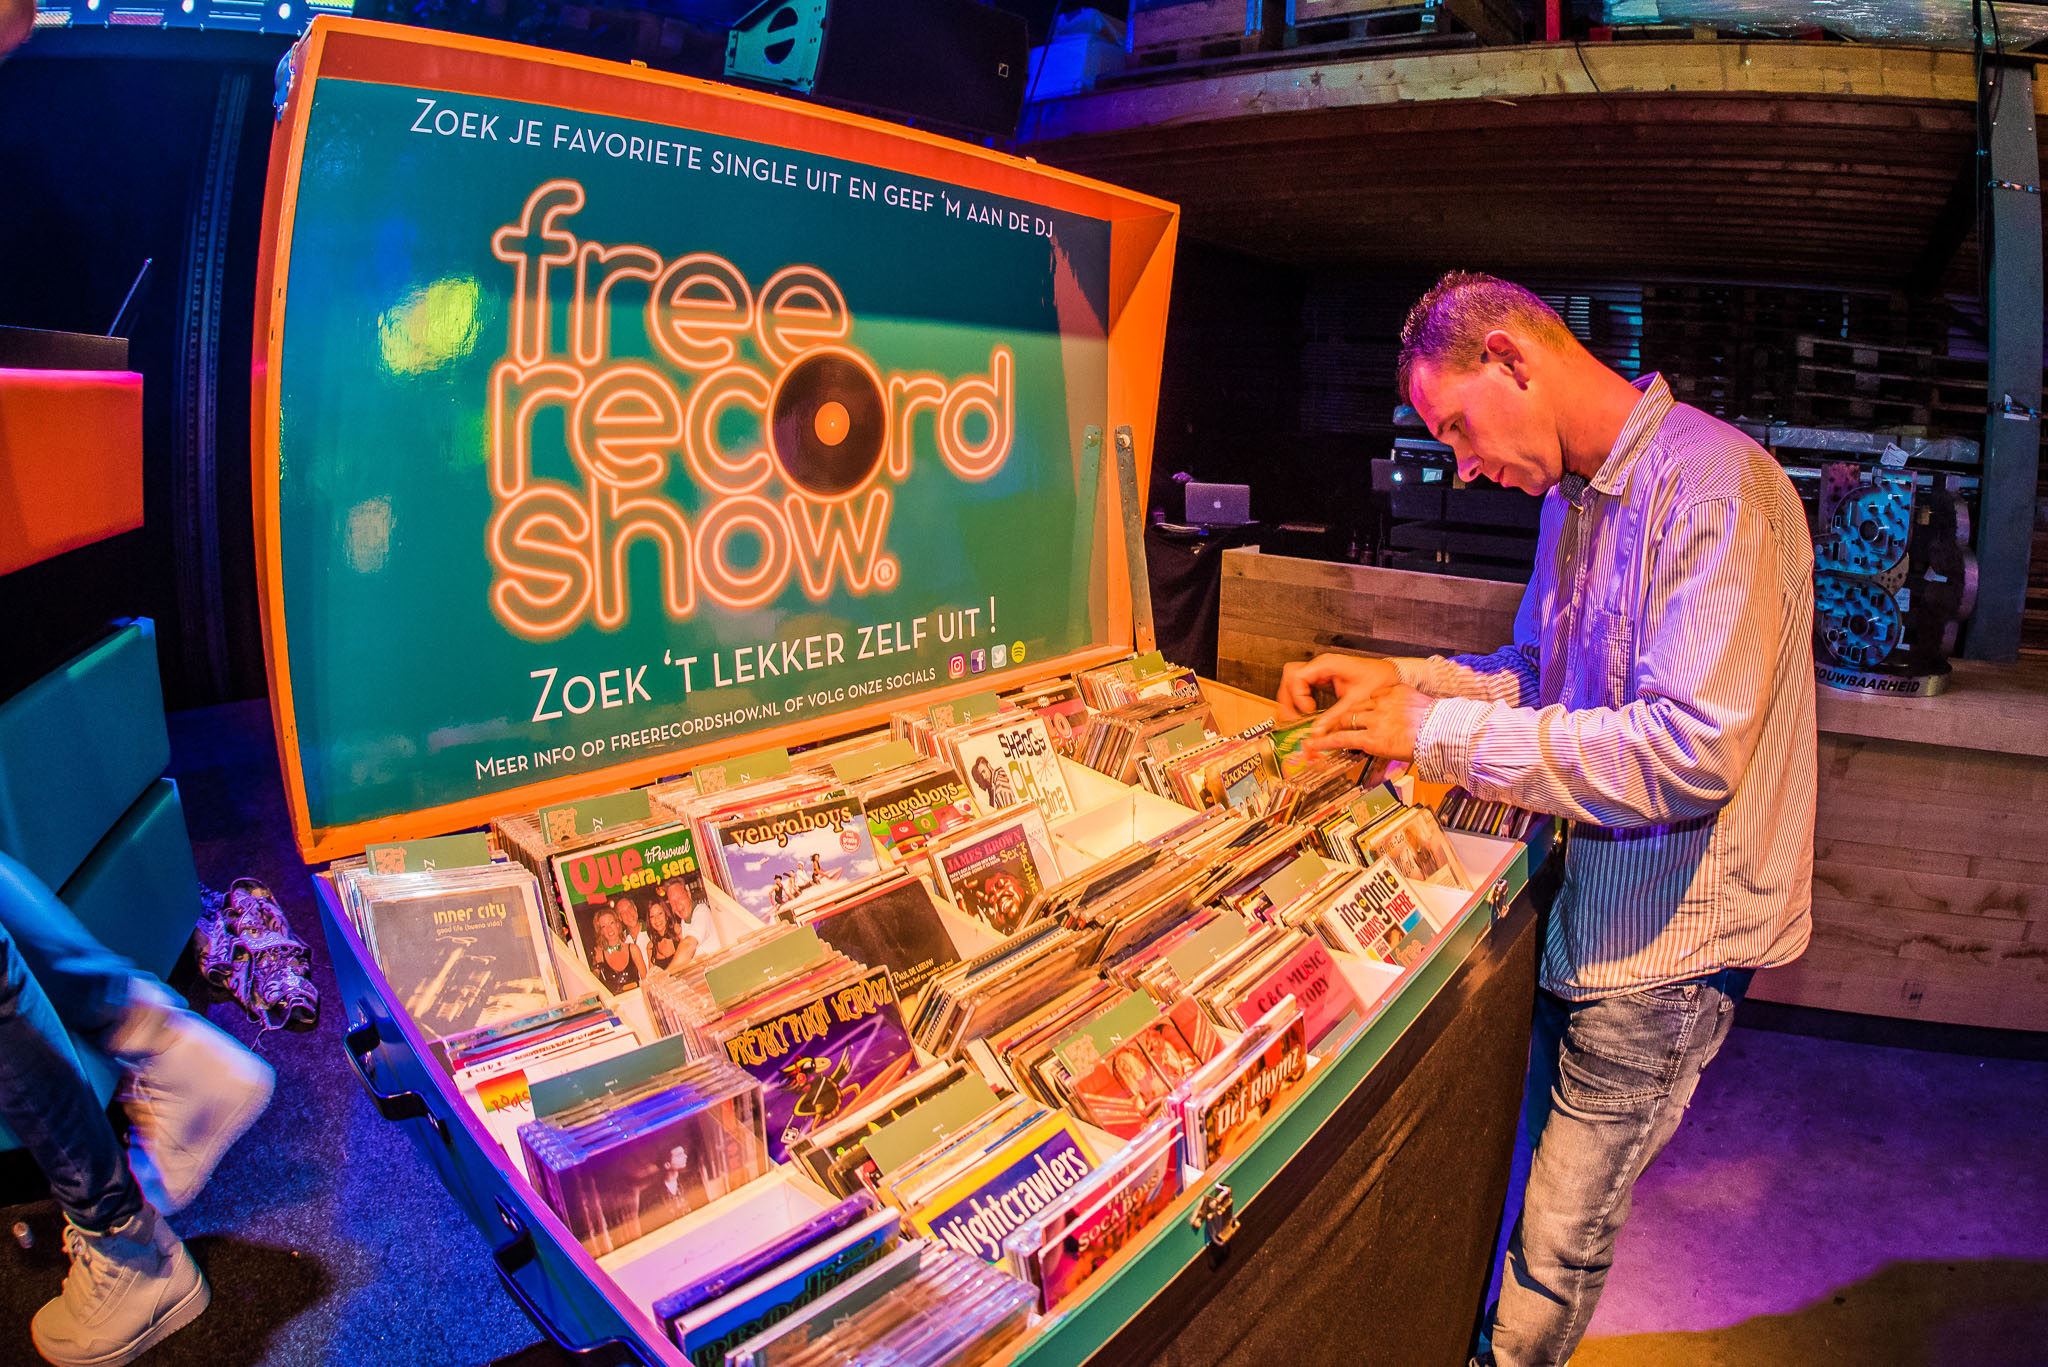 Free Record Show Feest Galvano jublieum